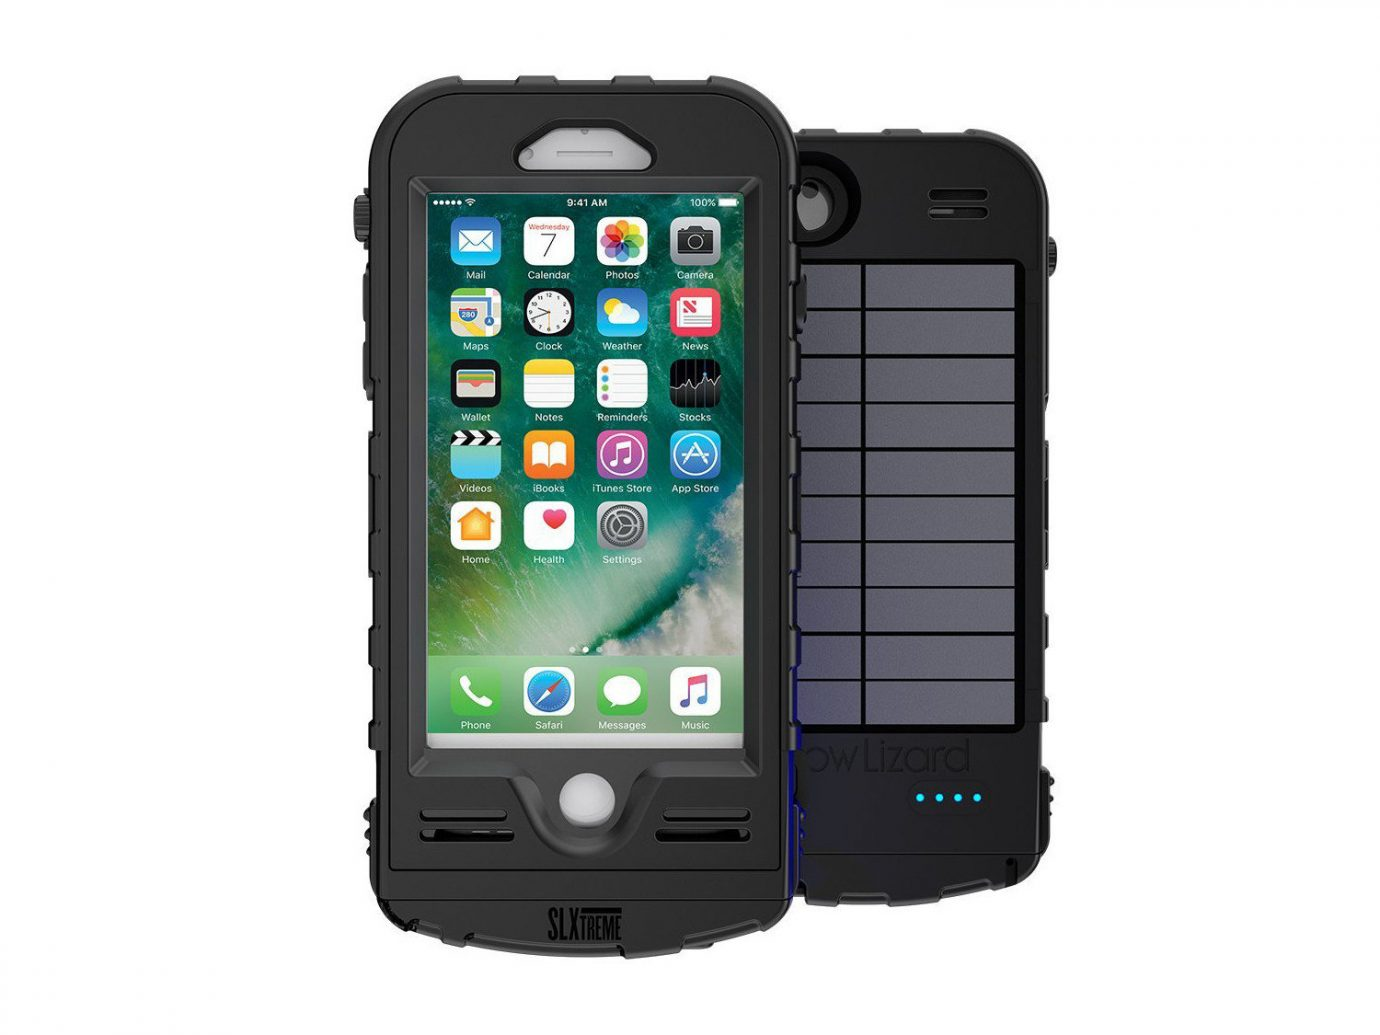 mobile phone gadget feature phone communication device technology telephony portable communications device electronic device product cellular network electronics smartphone mobile device hardware telephone mobile phone accessories cellphone